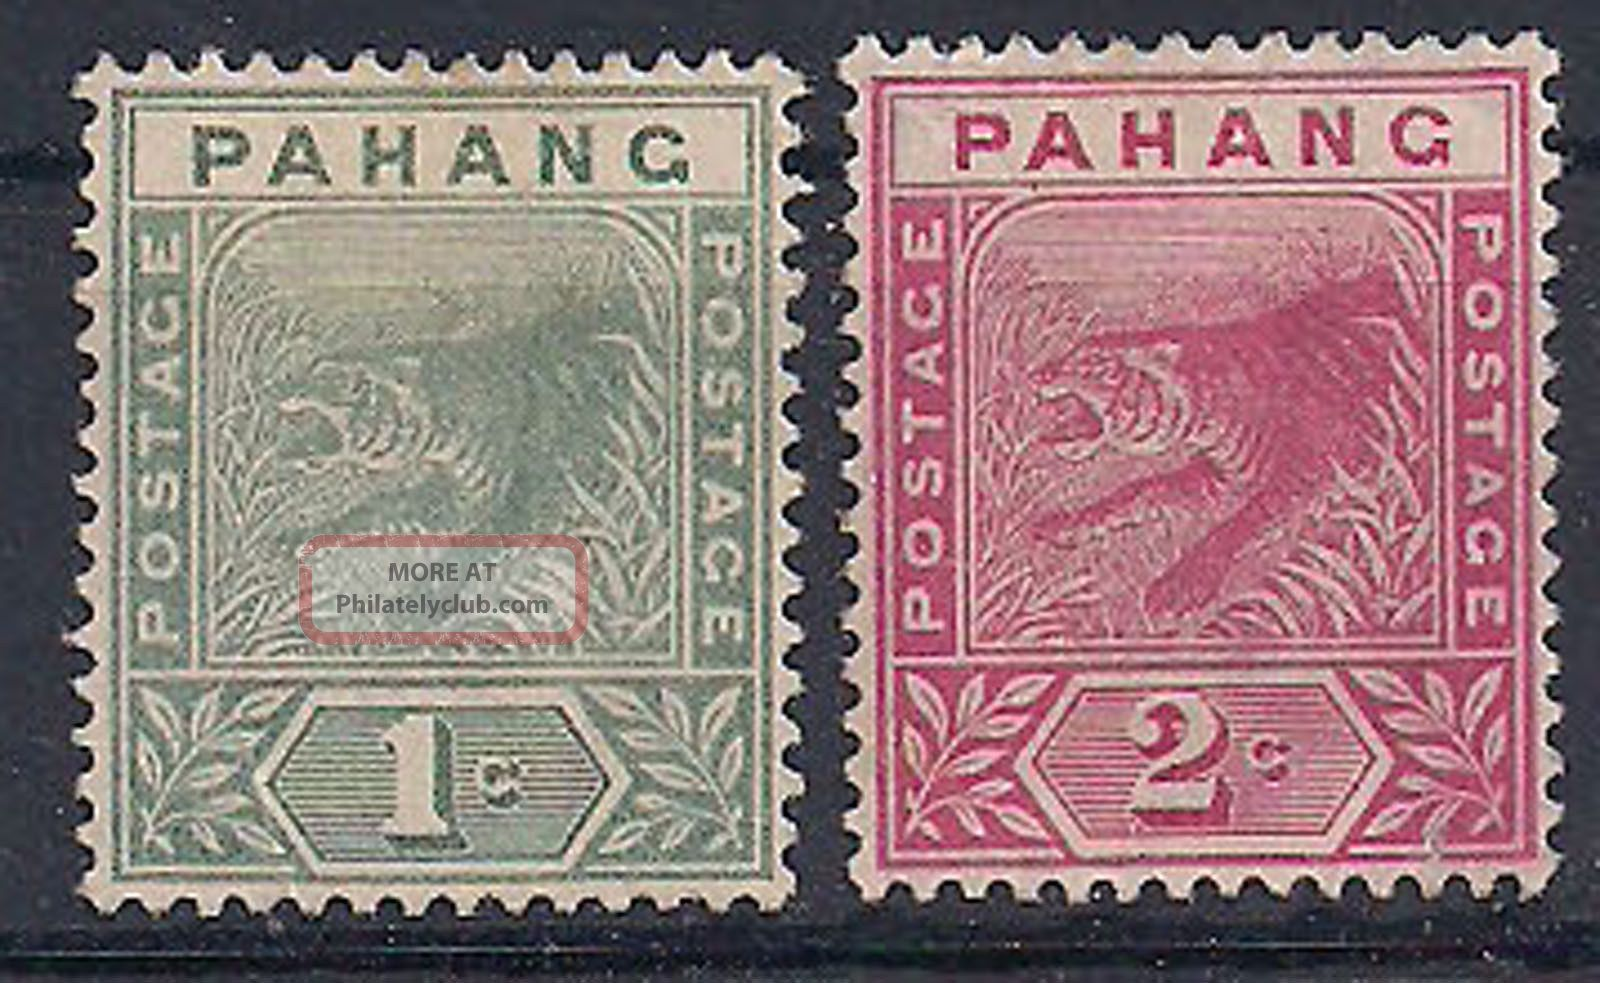 Pahang - 1891 Wild Animal Mlh - Vf 5 - 6 Animal Kingdom photo